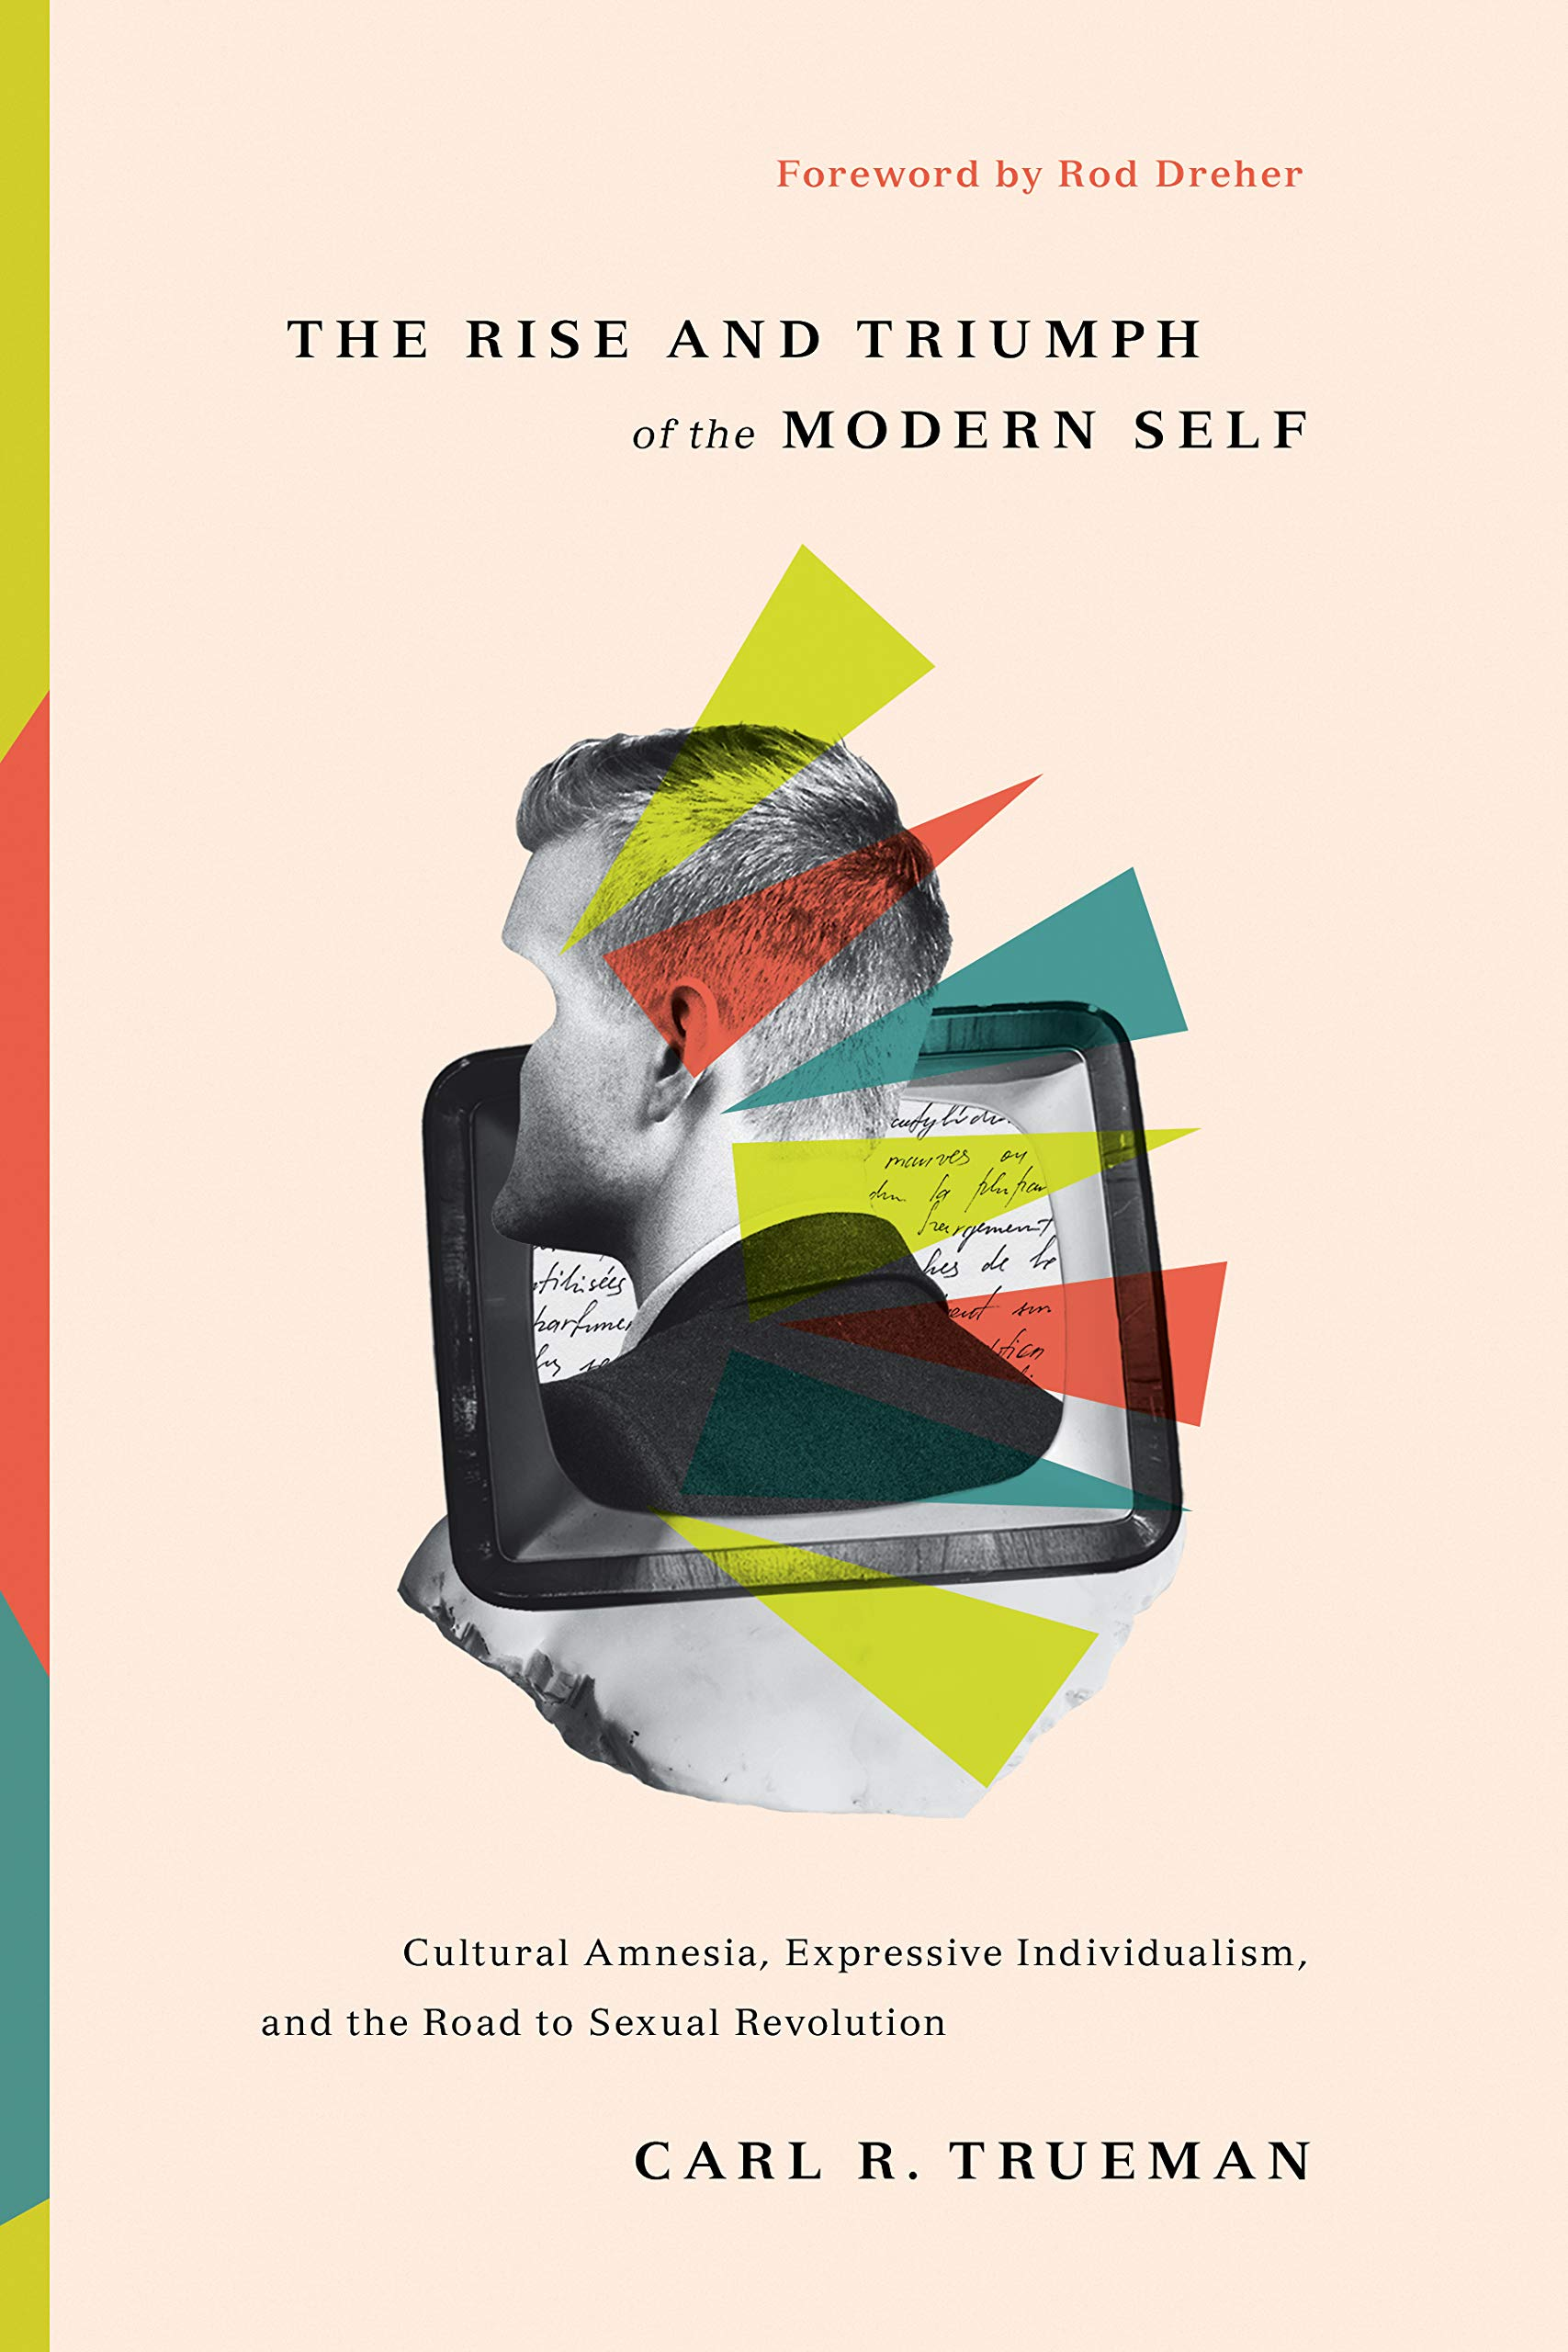 The Rise and Triumph of the Modern Self: Cultural Amnesia, Expressive  Individualism, and the Road to Sexual Revolution: Trueman, Carl R., Dreher,  Rod: 9781433556333: Amazon.com: Books